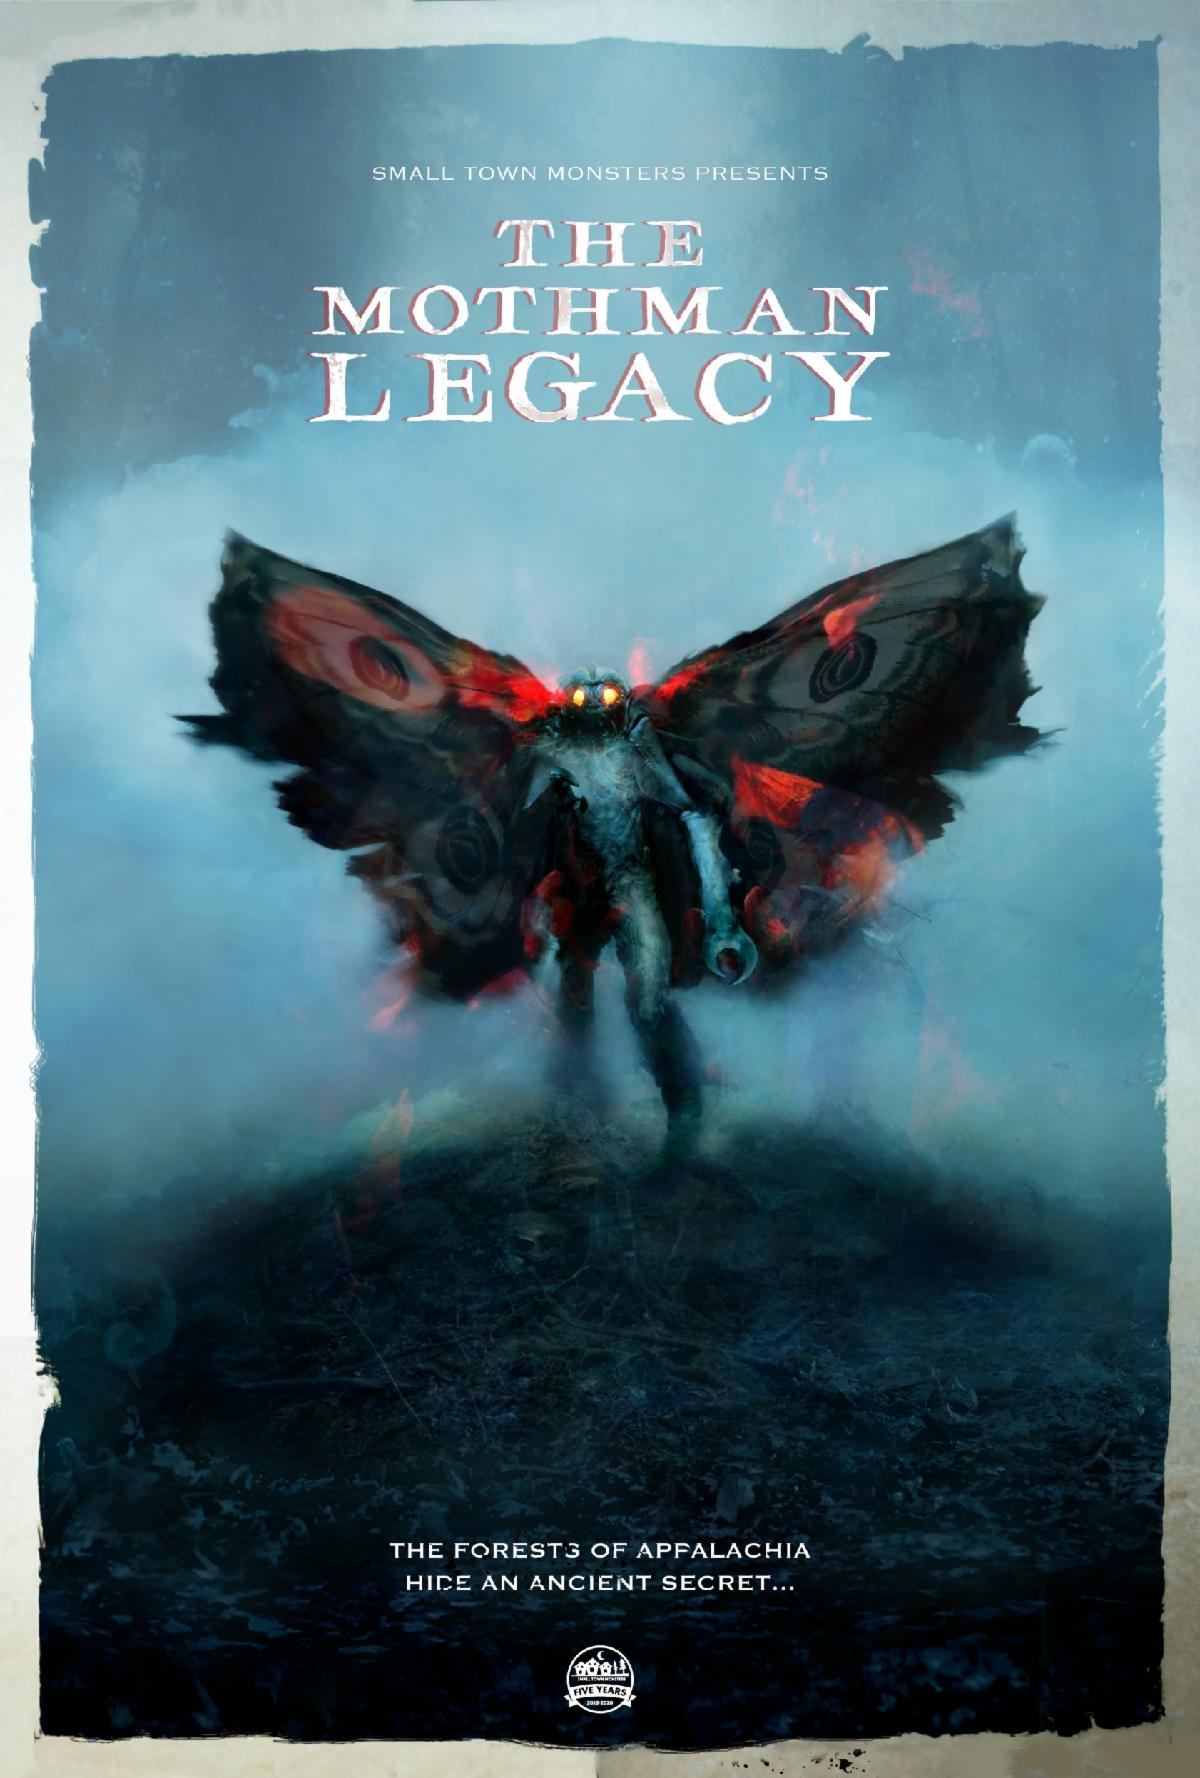 Journey into The Mothman Legacy With New Trailer & Art